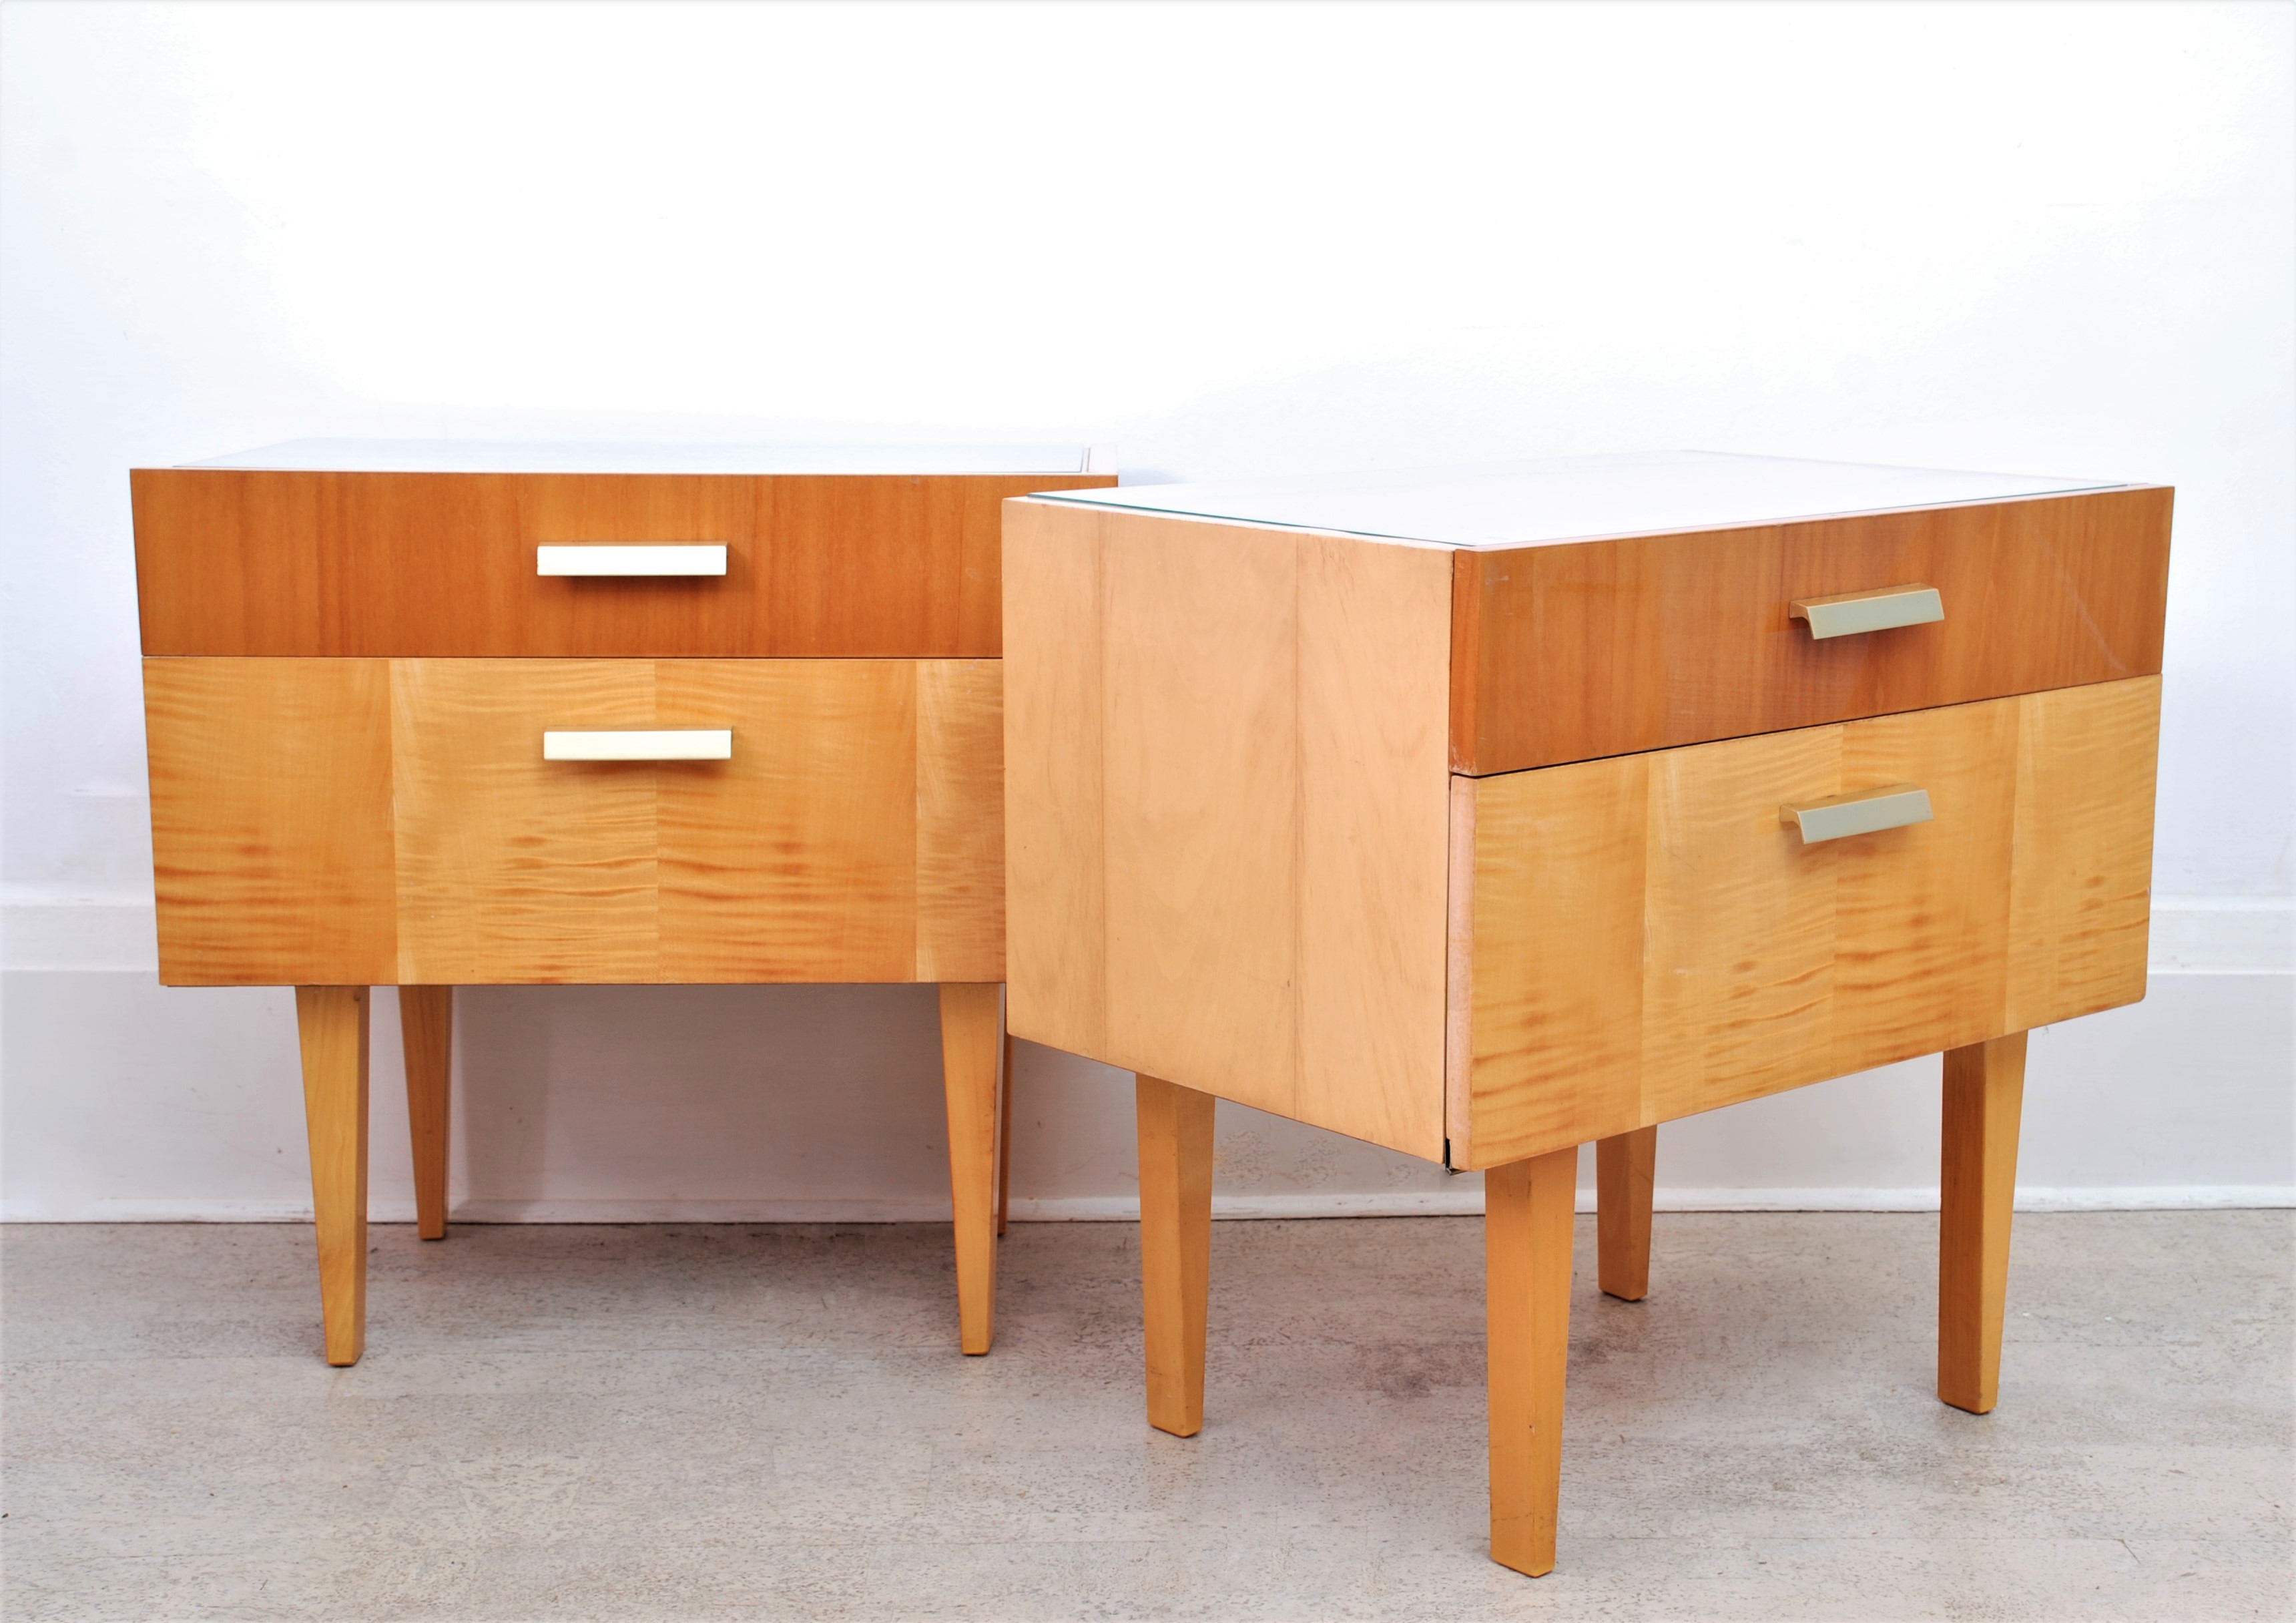 GERMAN MID CENTURY BEDSIDE TABLES